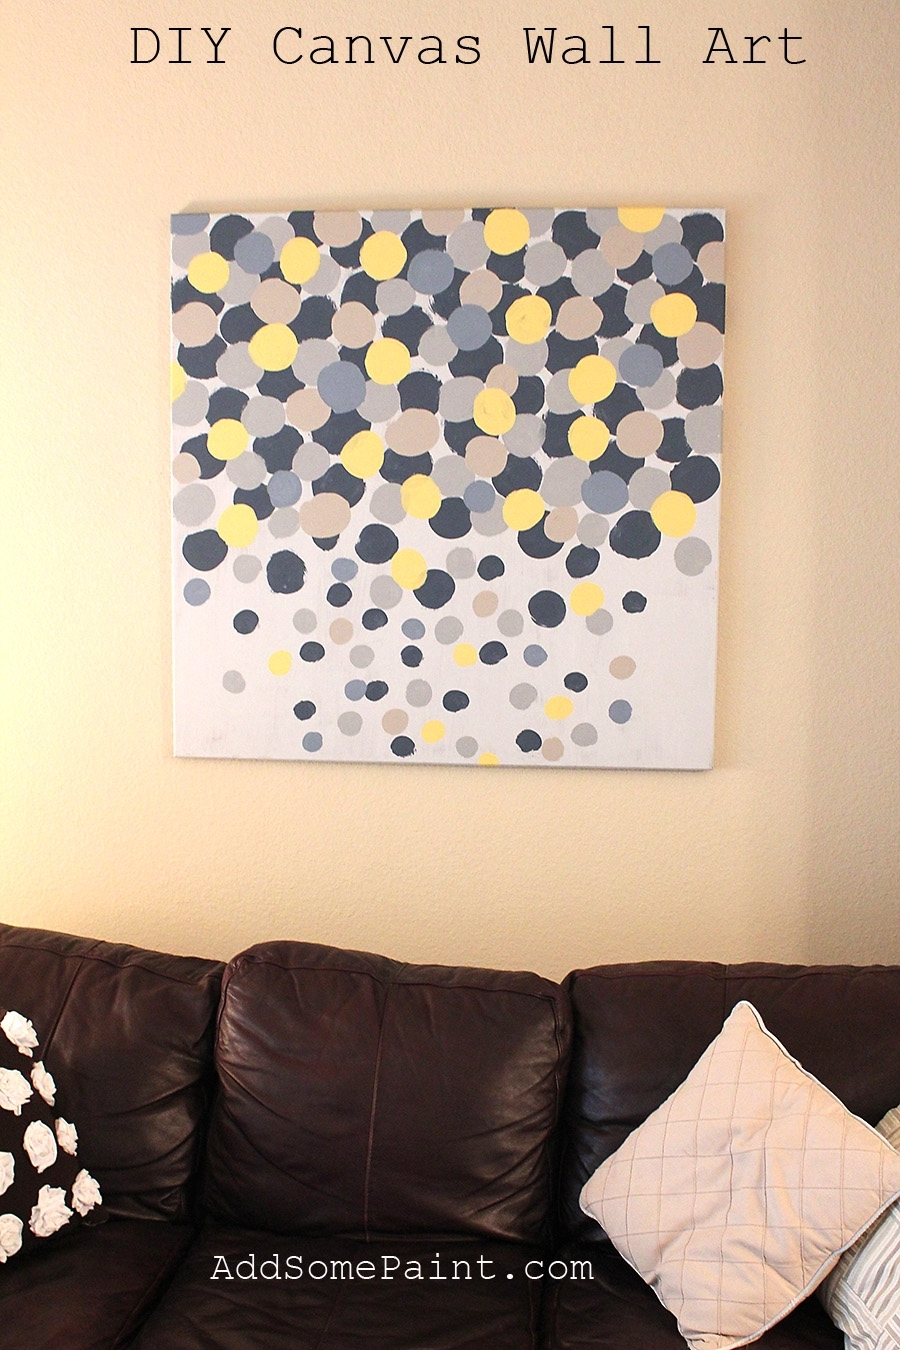 Diy Living Room Canvas Art | Gopelling Within 2018 Diy Abstract Canvas Wall Art (View 5 of 20)